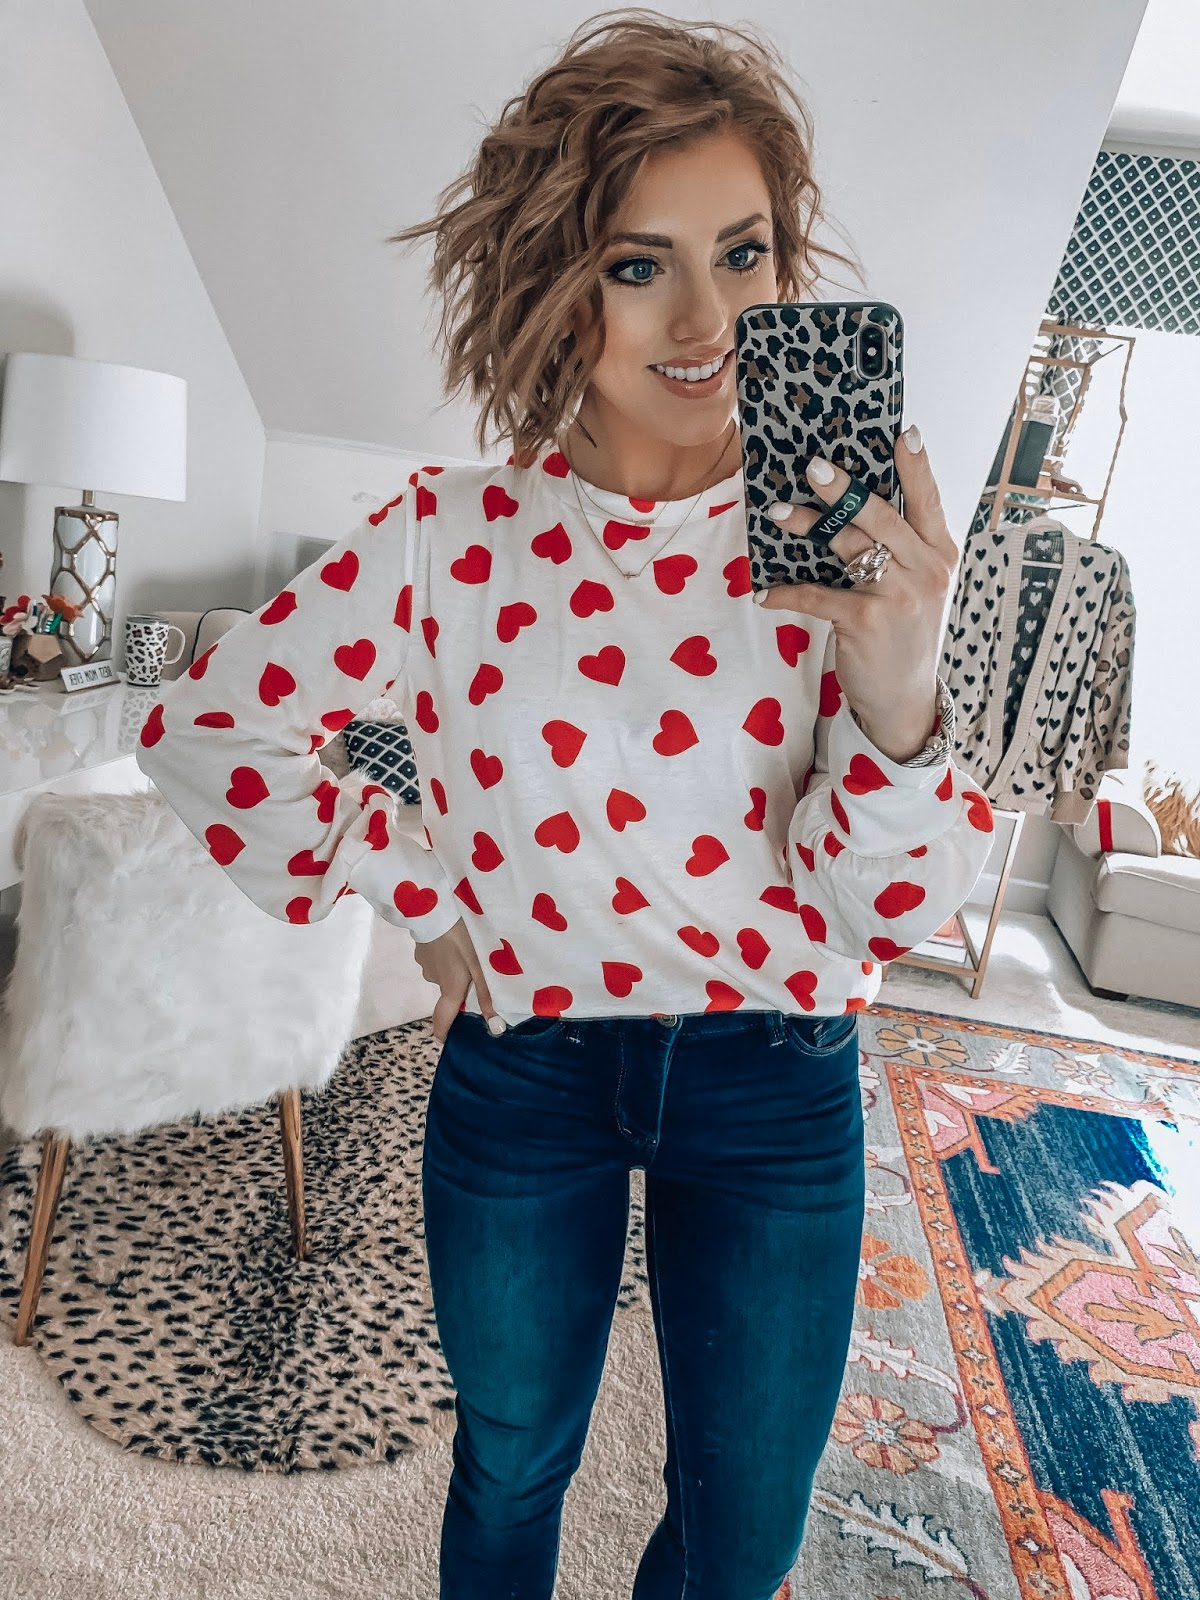 Recent Amazon Finds - Under $30 Heart Print Sweatshirt for Valentine's Day - Something Delightful Blog #AmazonFashion #RecentFinds #Hearts #ValentinesDay #AffordableFashion